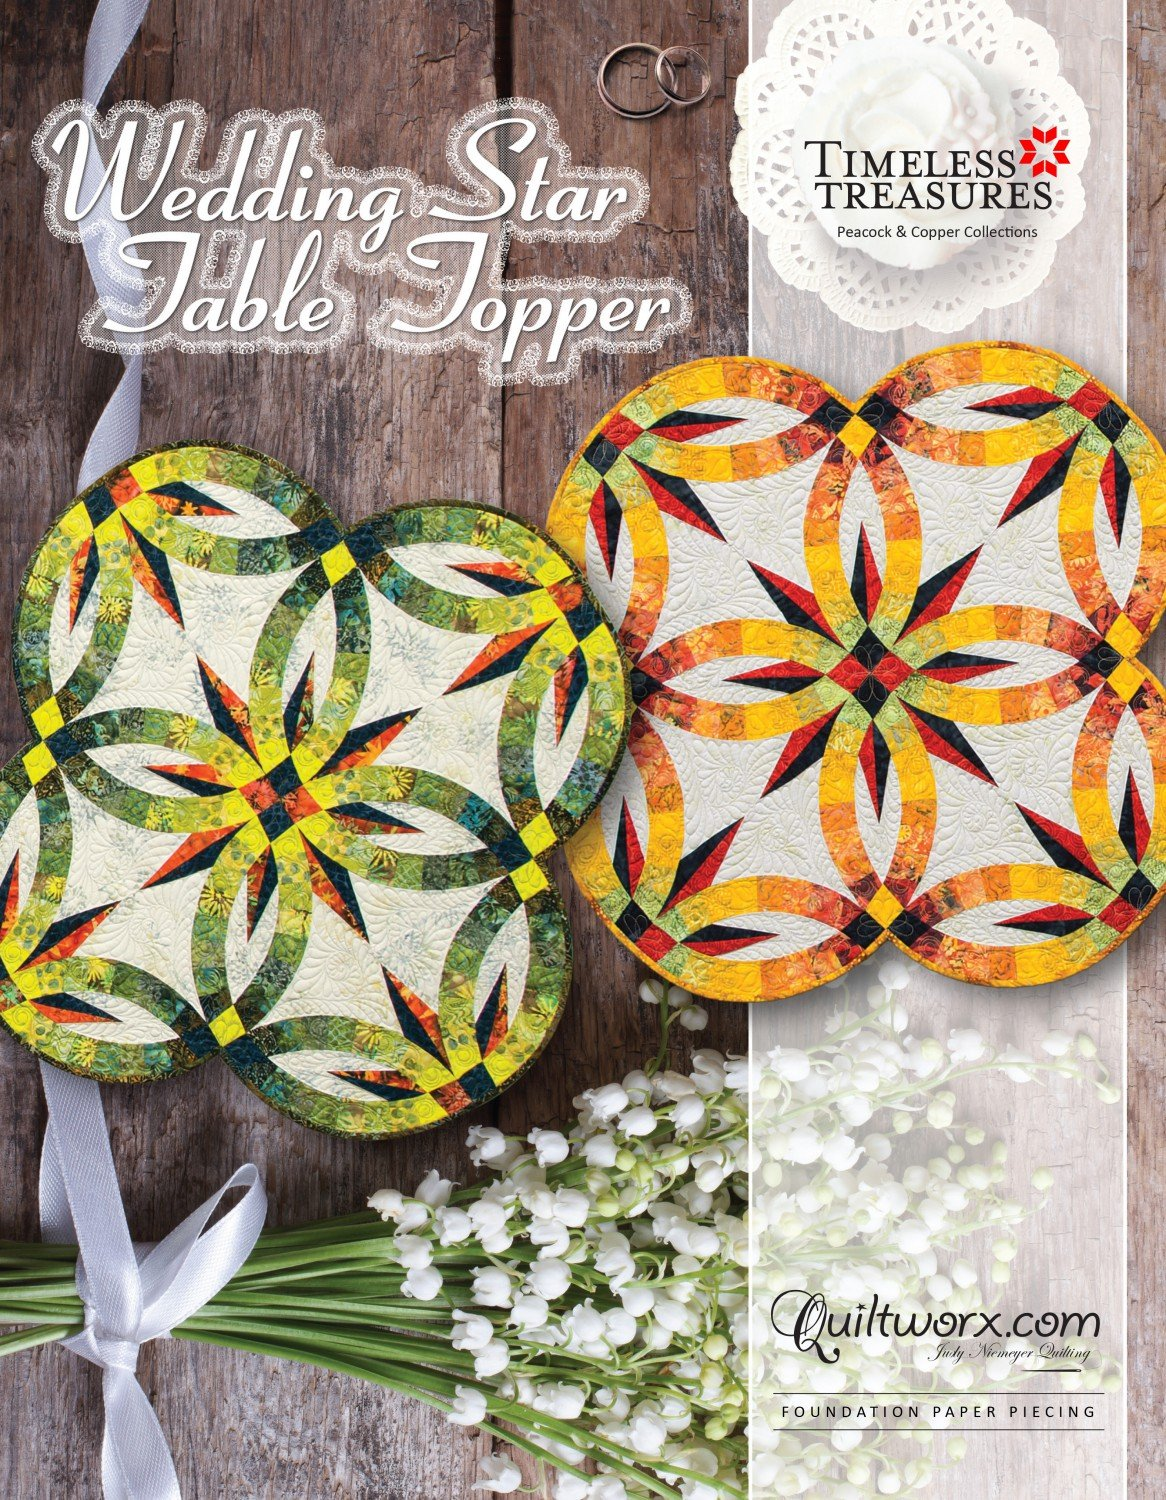 Wedding Star Table Topper